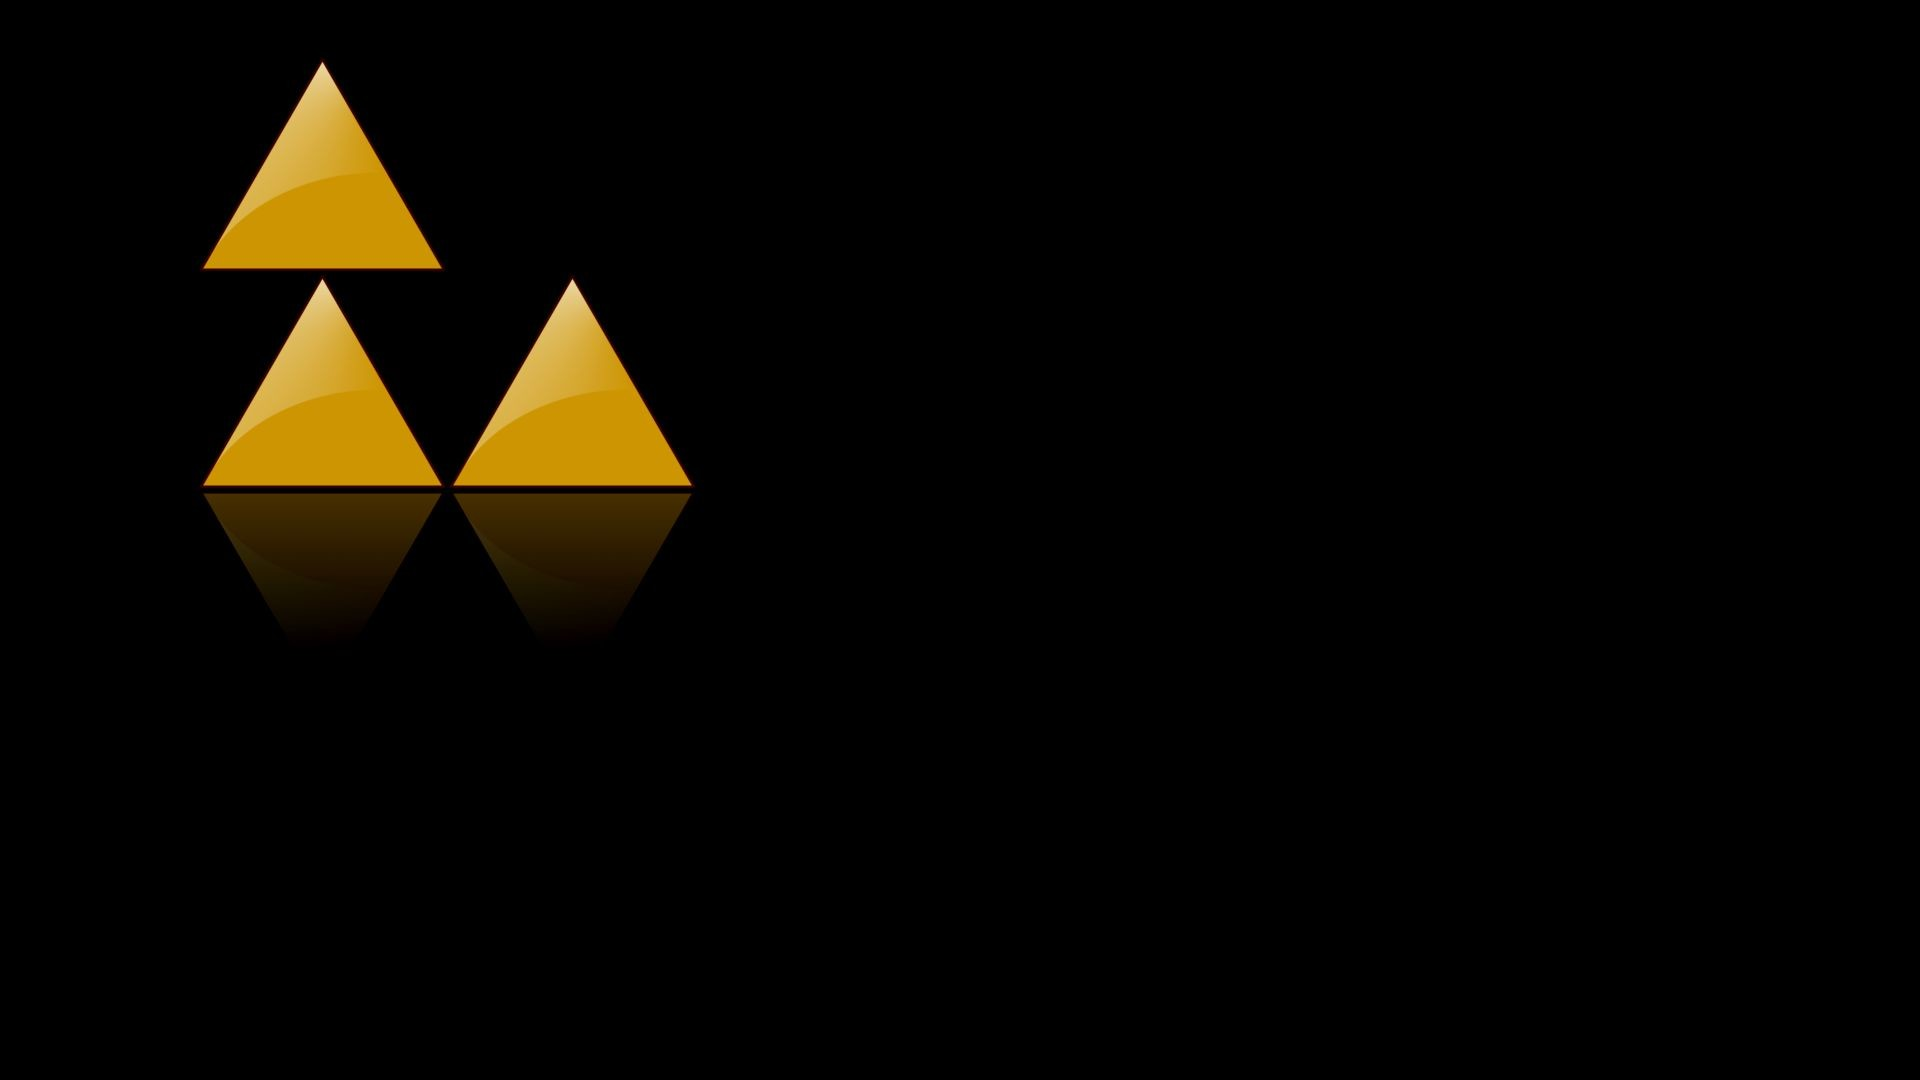 Triforce Wallpapers 70 Background Pictures